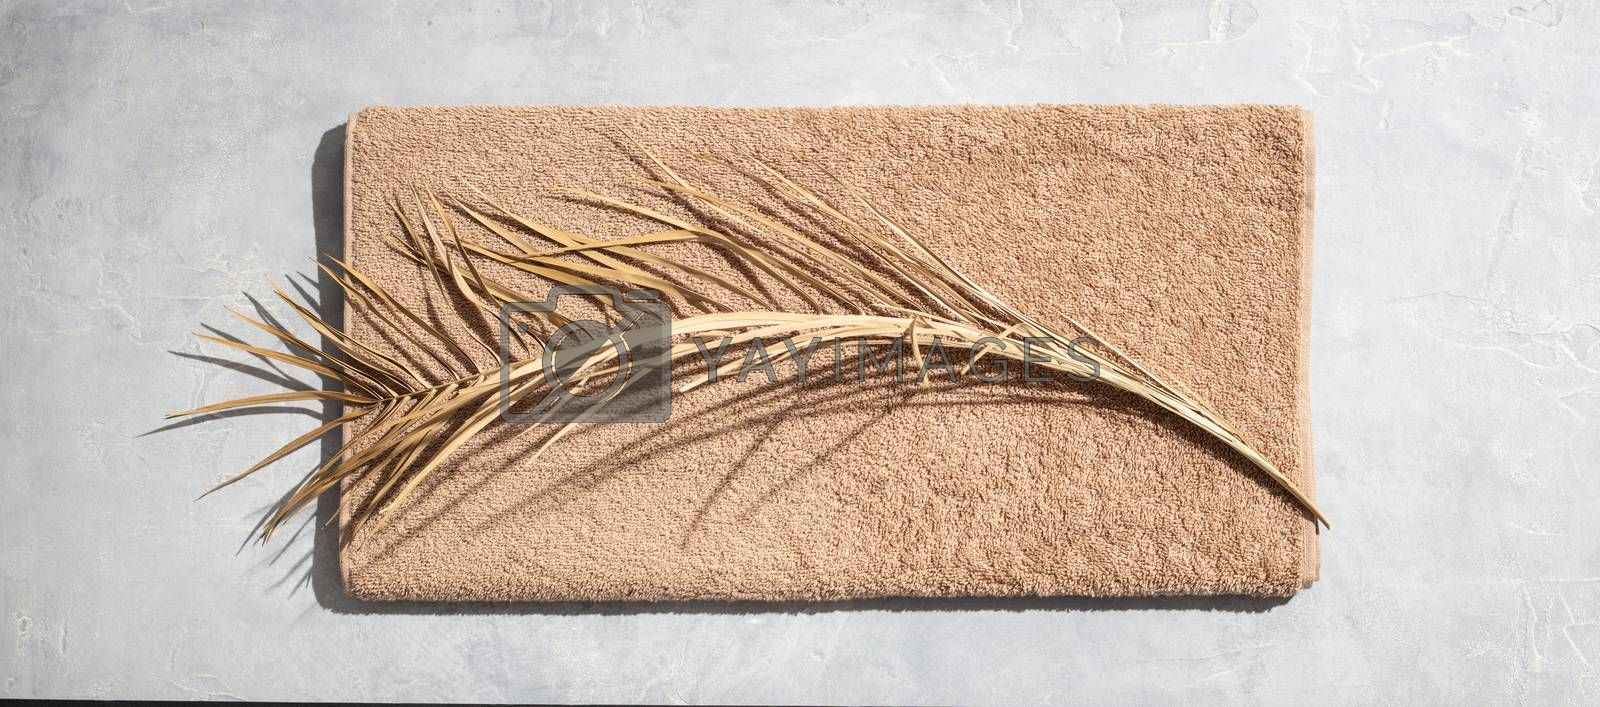 Dried leaf of palm and towel on concrete background, flat lay